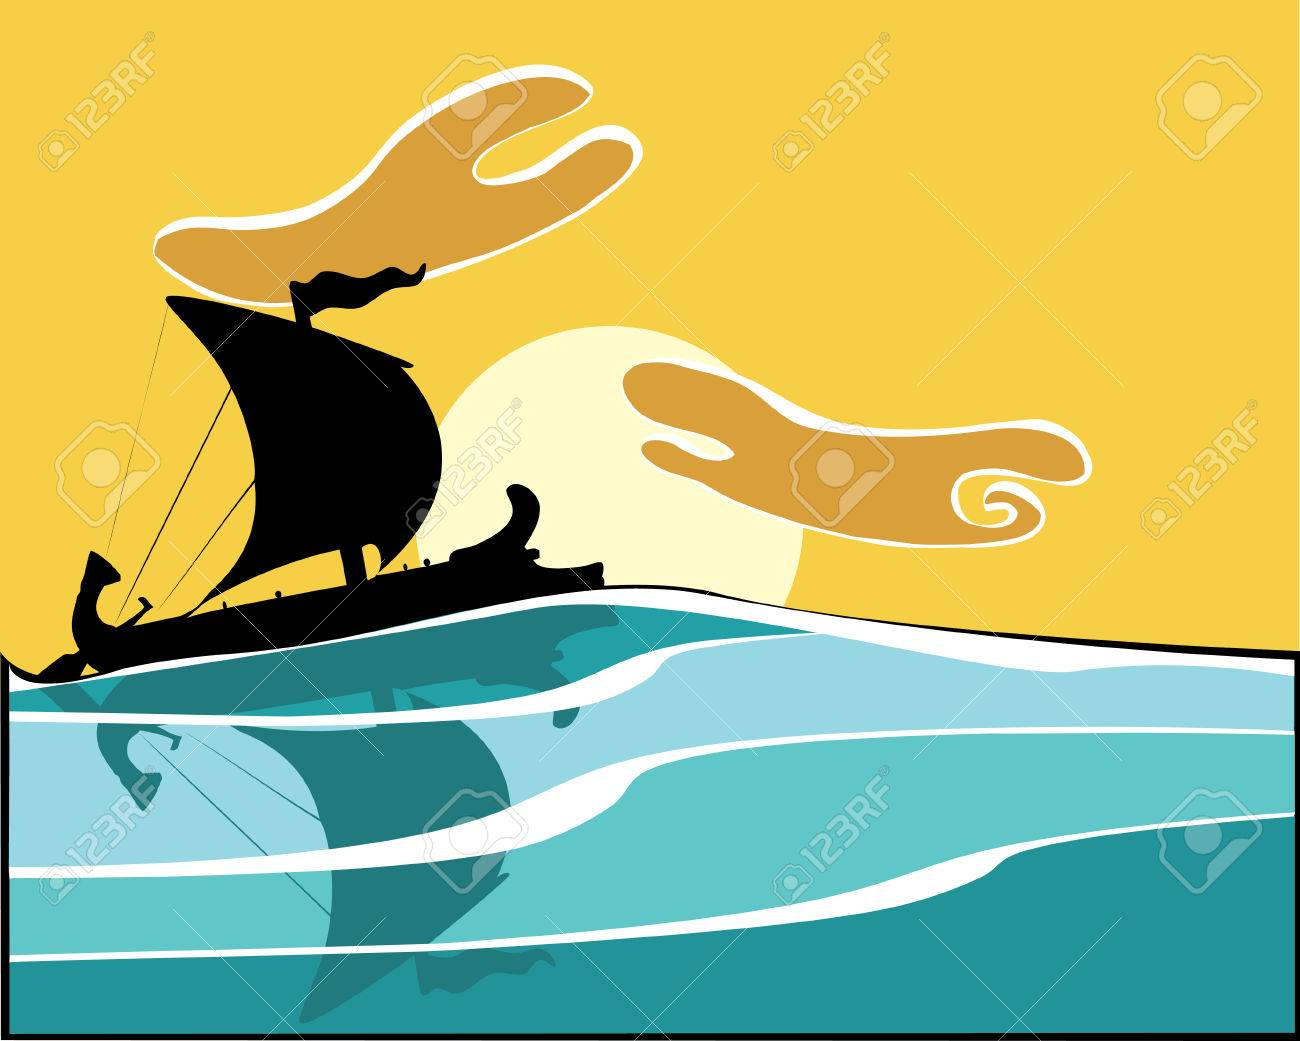 Greek Warship in the evening. Stock Vector - 5150195